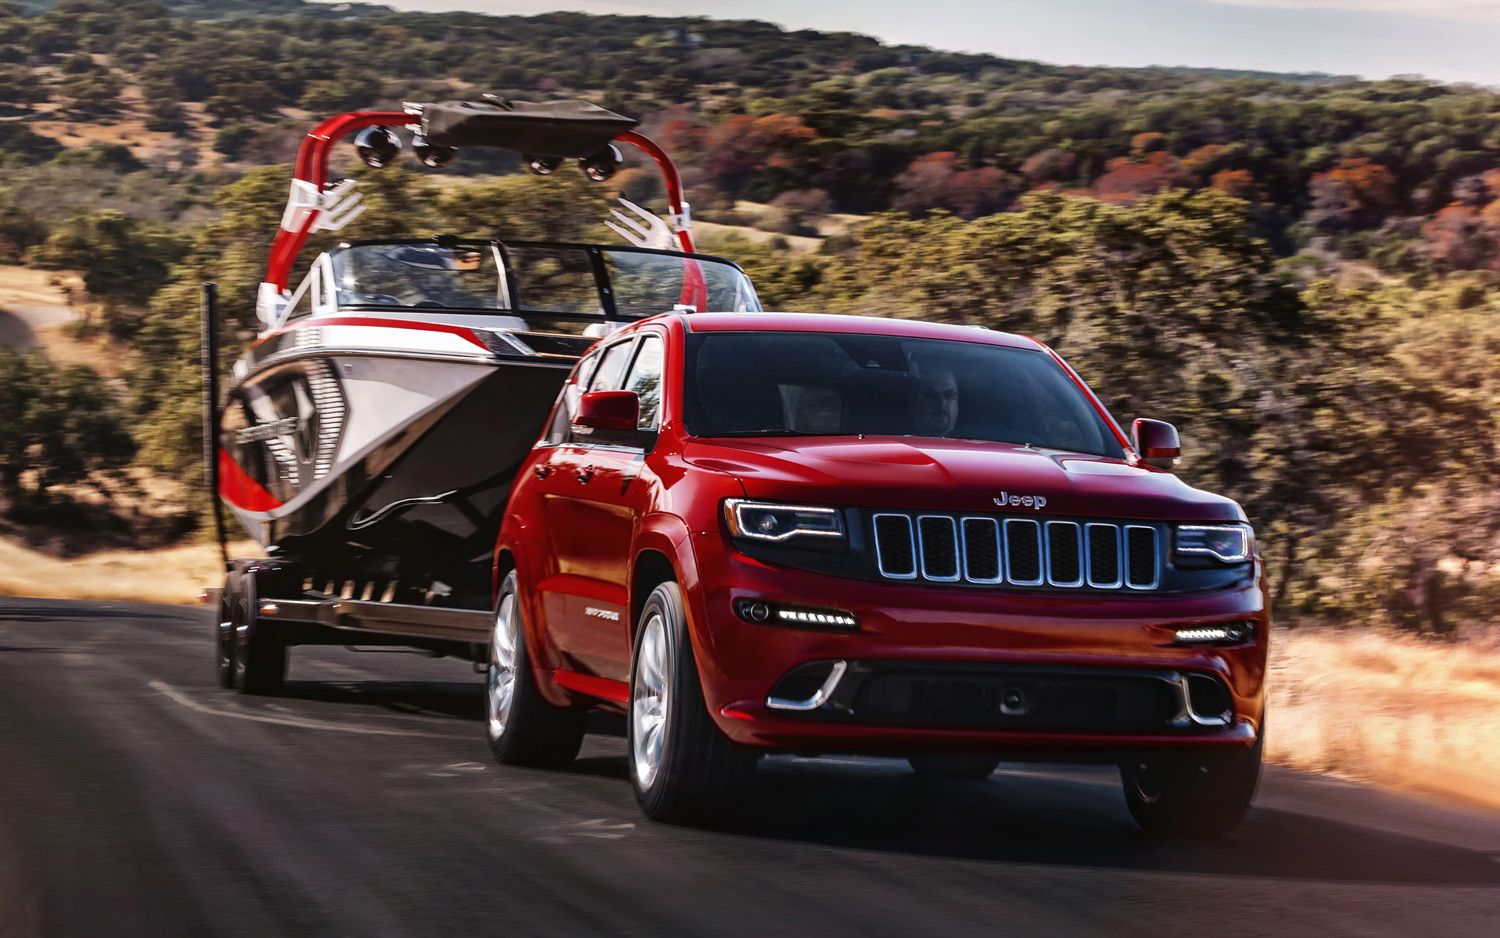 2014-jeep-grand-cherokee-srt8 | boats | pinterest | jeep grand